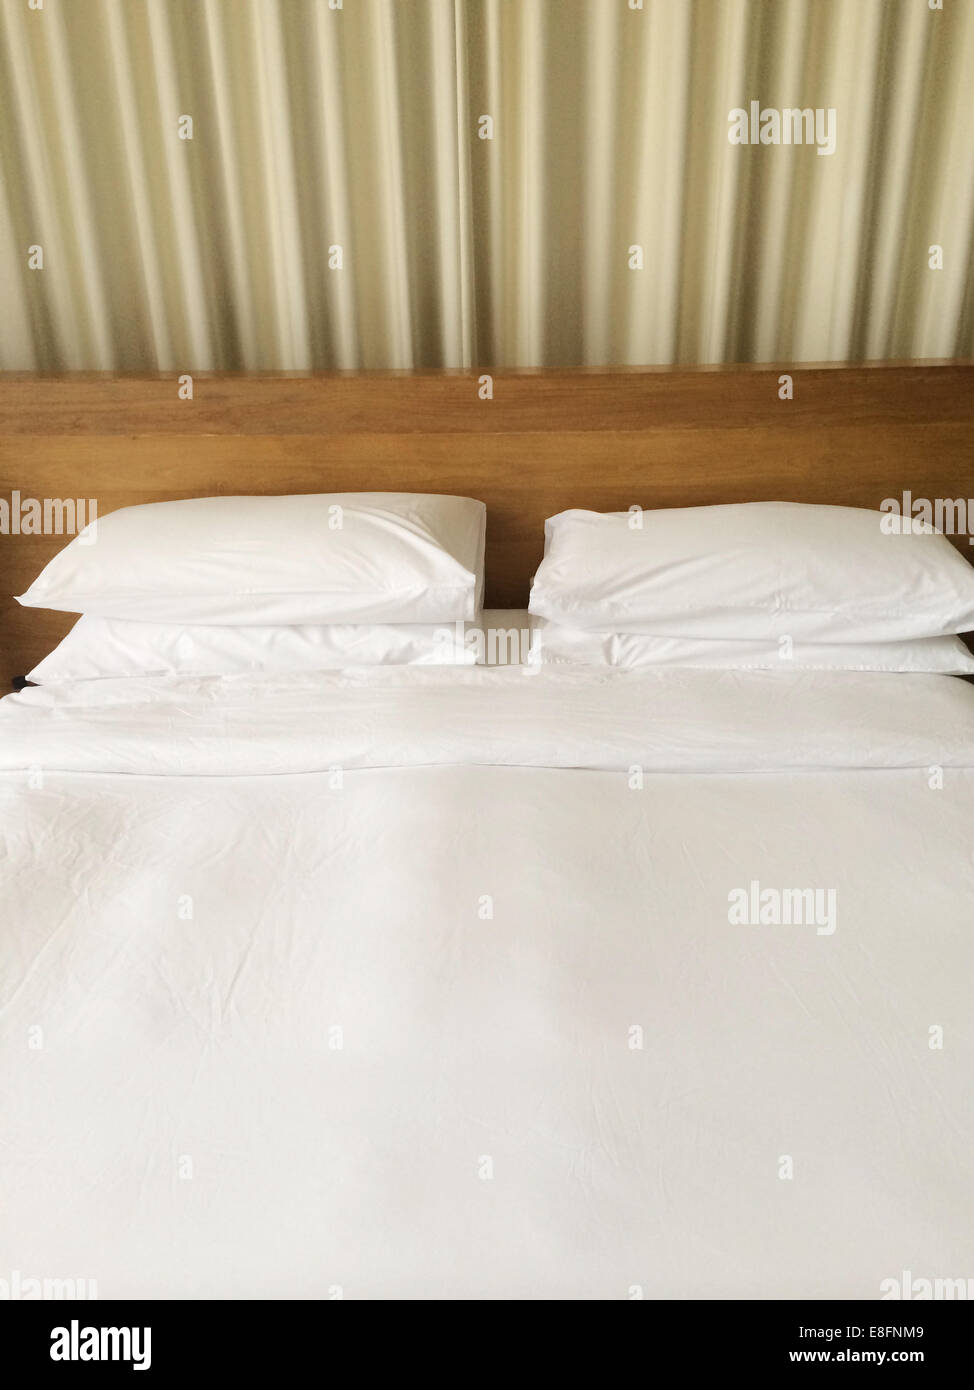 Bed with four pillows and duvet - Stock Image